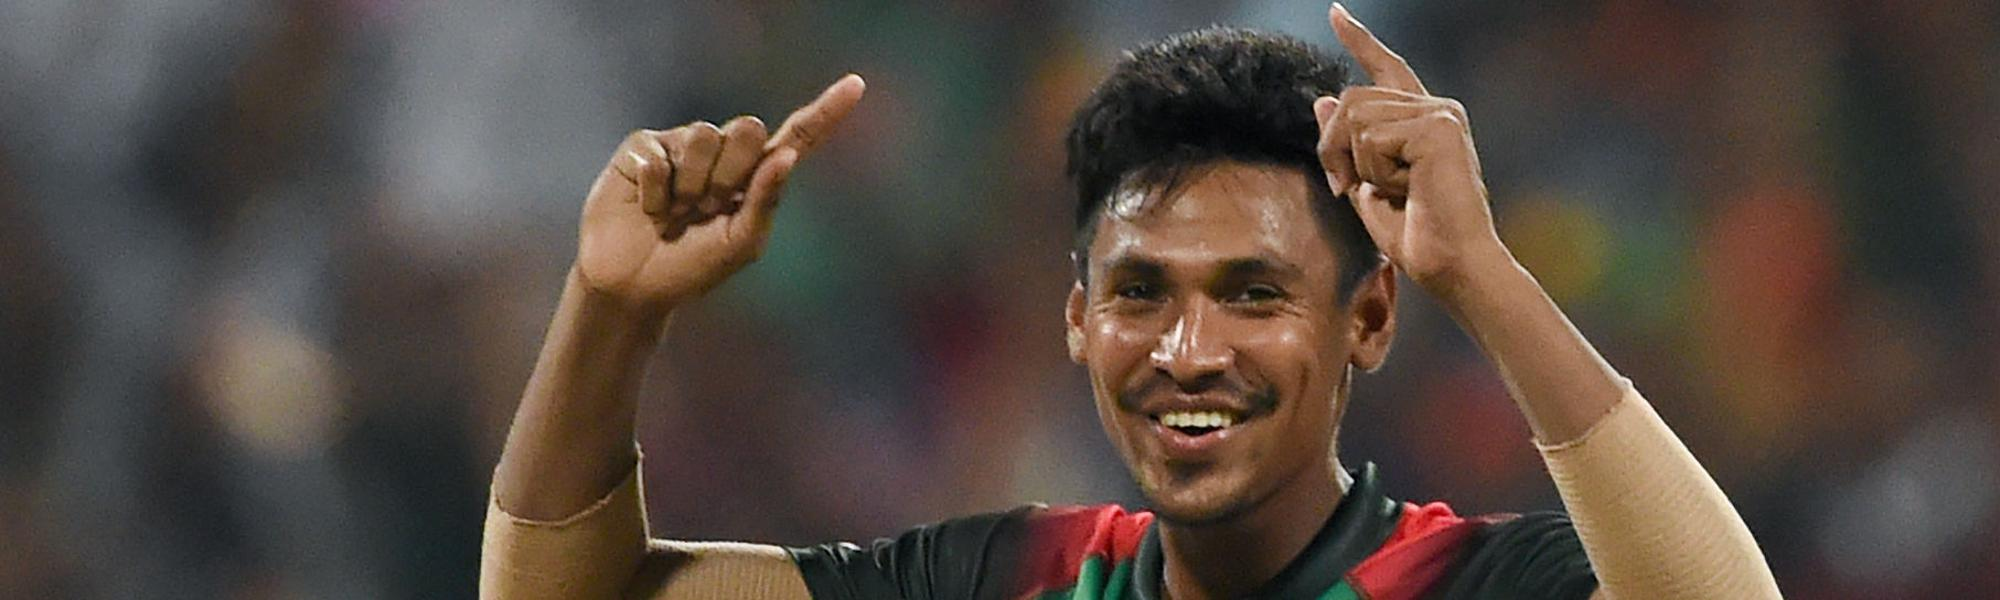 Mustafizur Rahman enjoyed good form, picking up 29 wickets at an average of 21.72